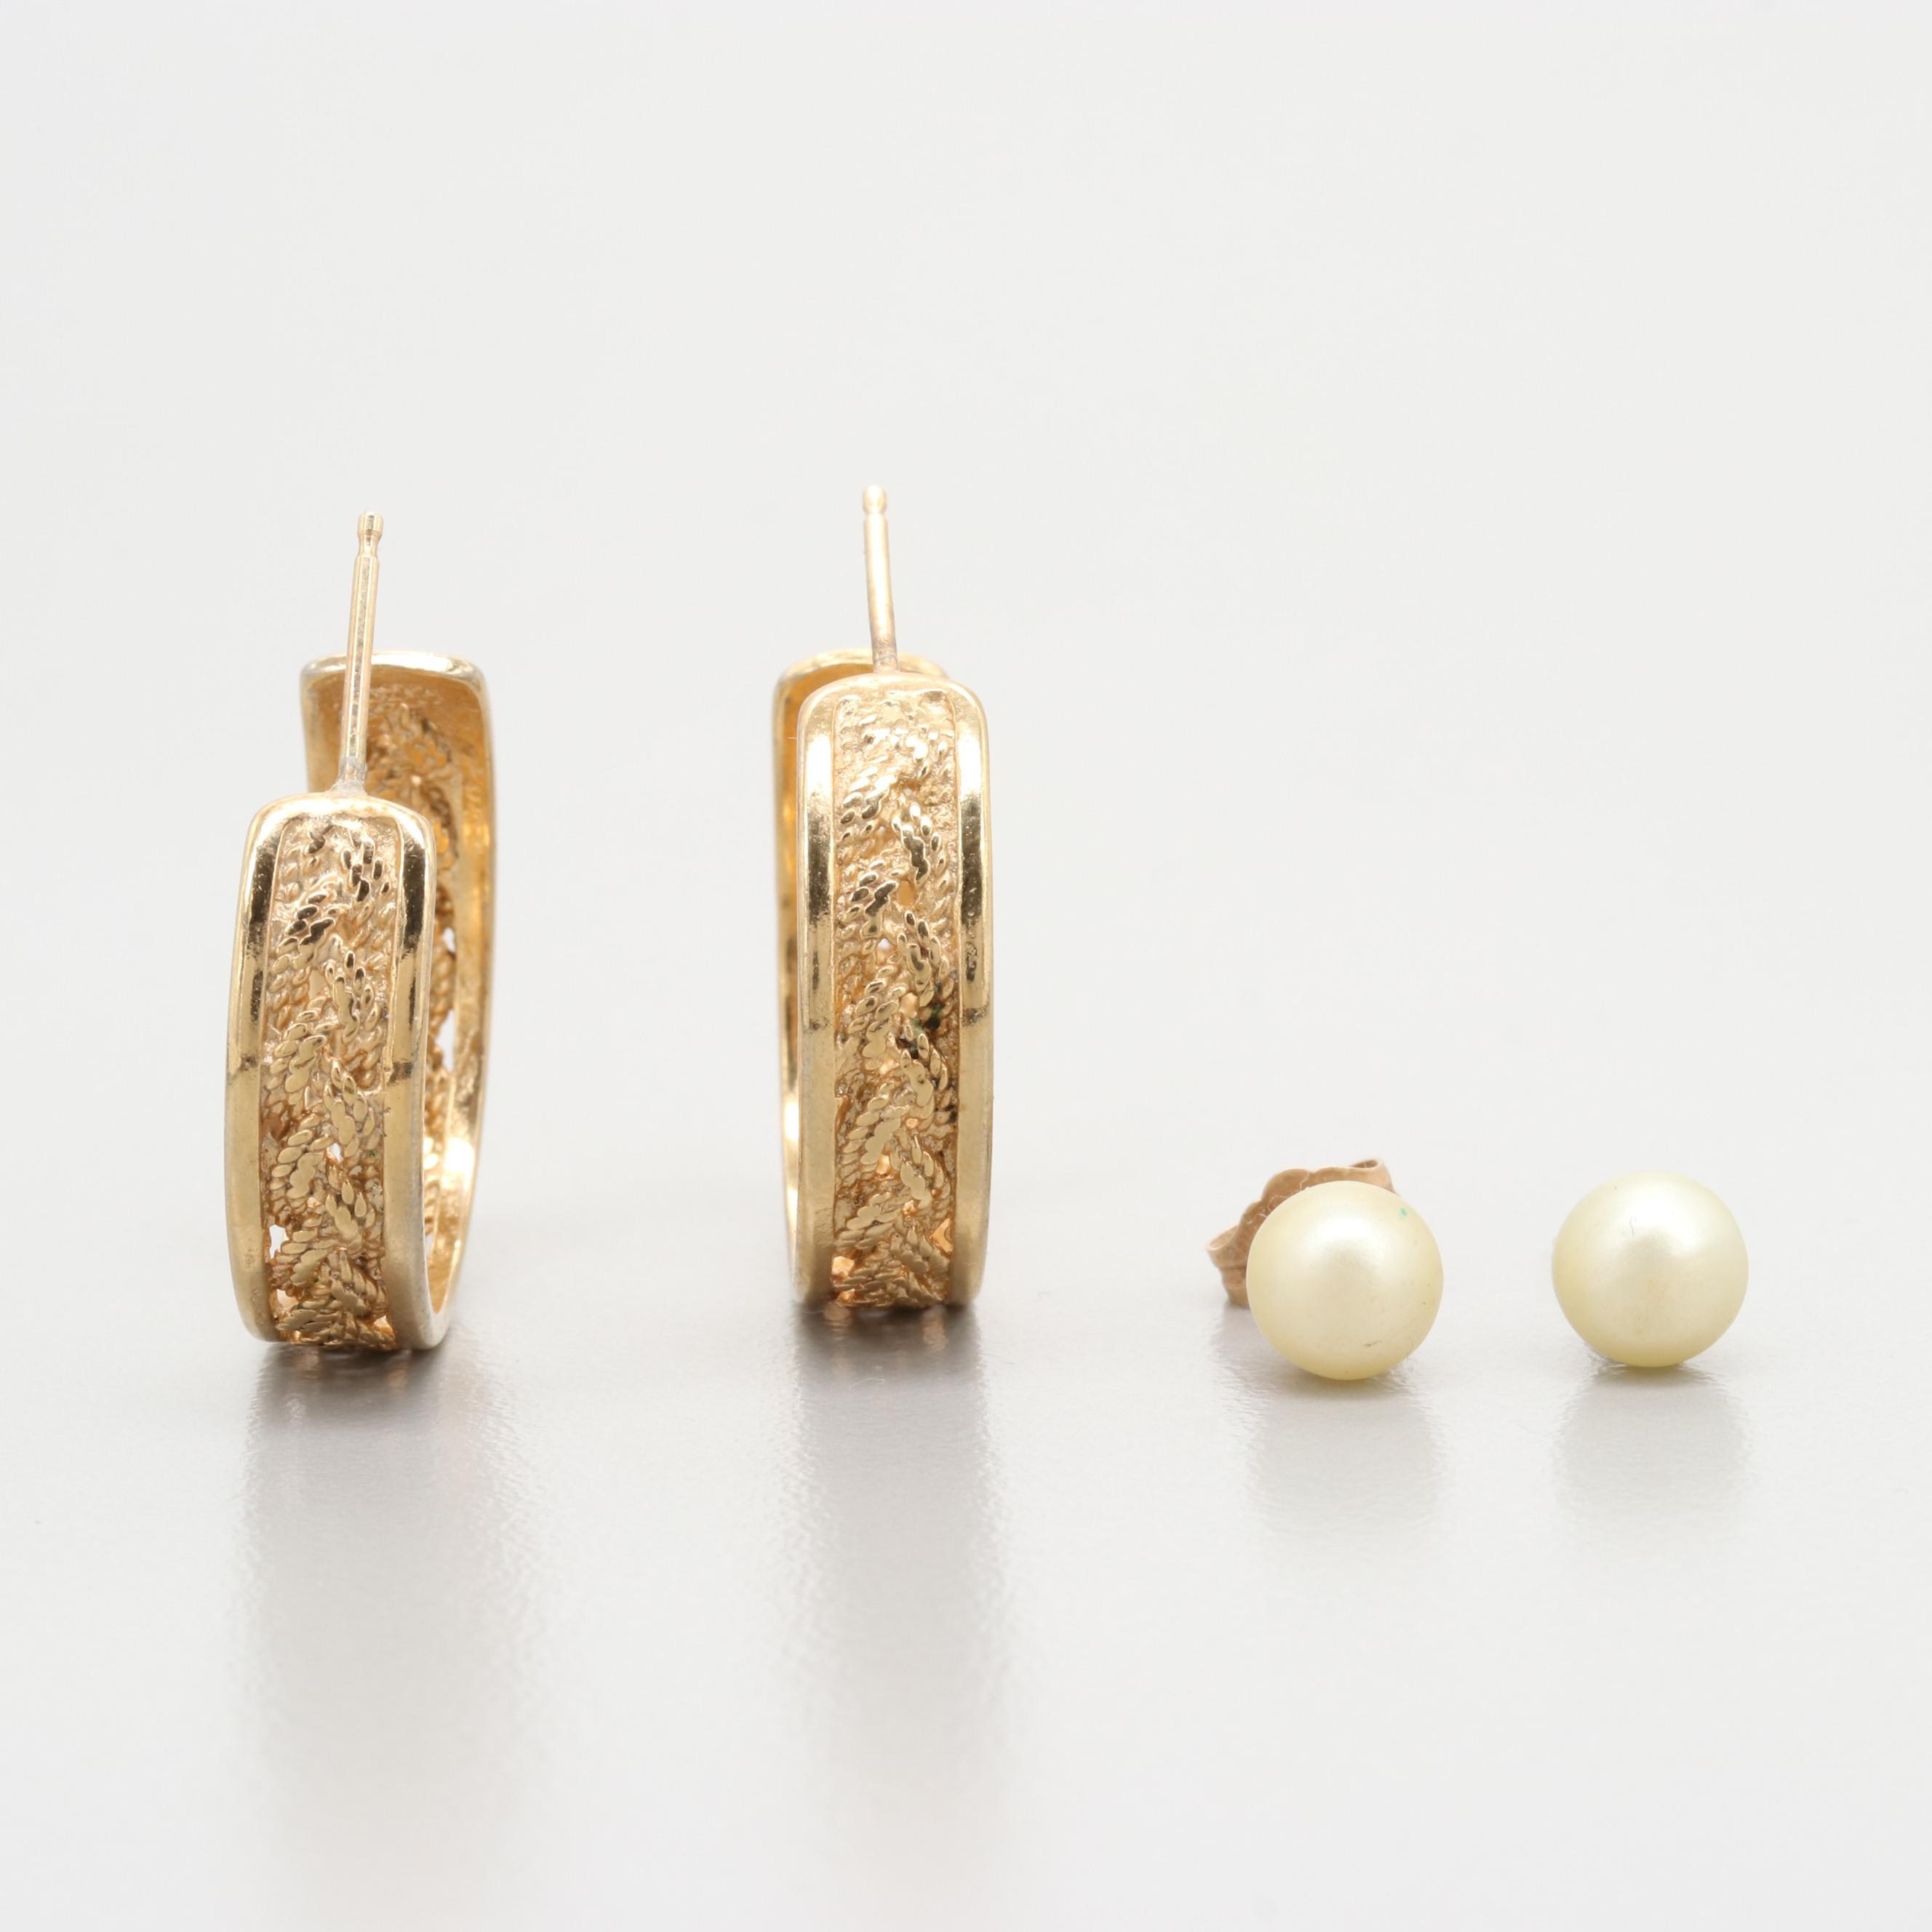 14K Yellow Gold and Gold Tone Imitation Pearl Earrings